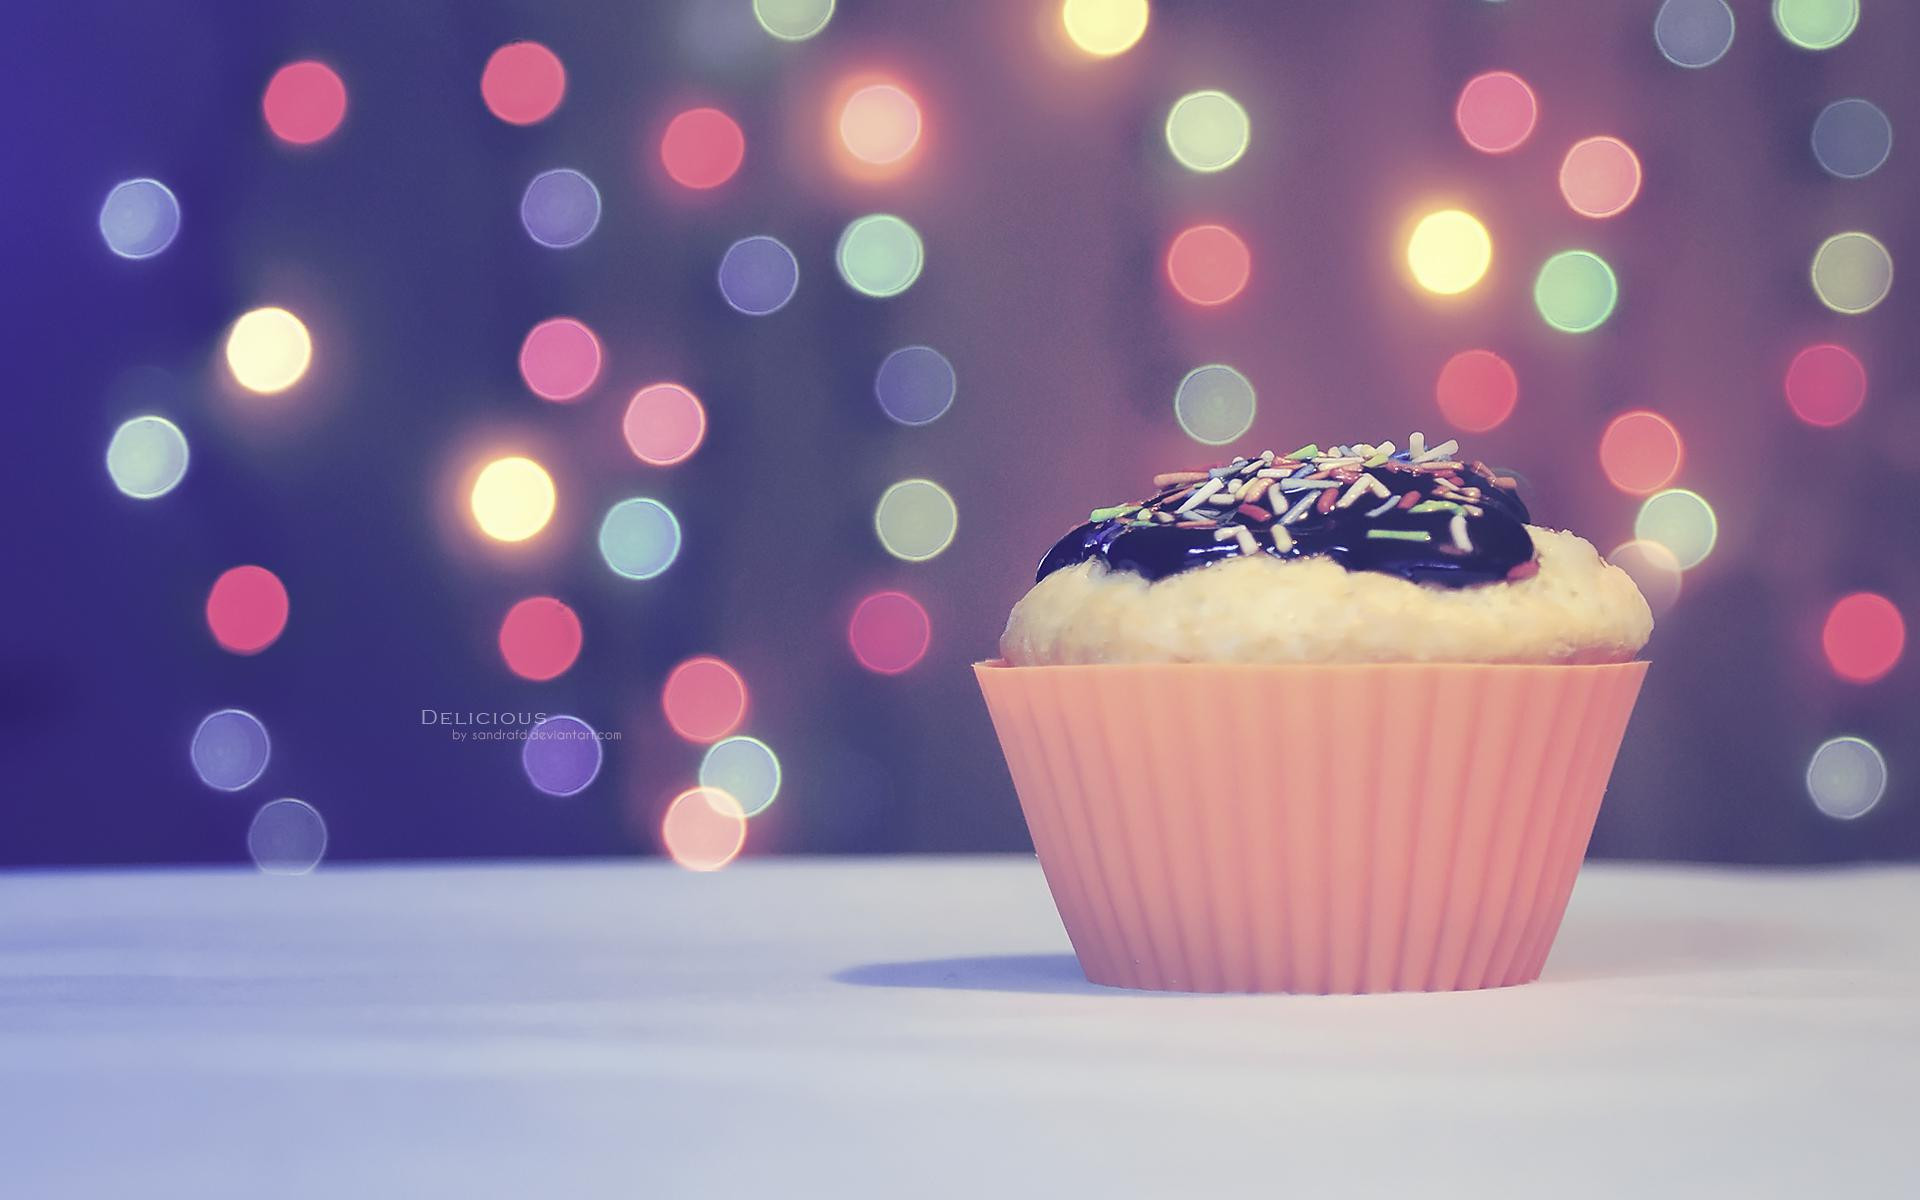 vintage cupcake wallpaper - photo #31